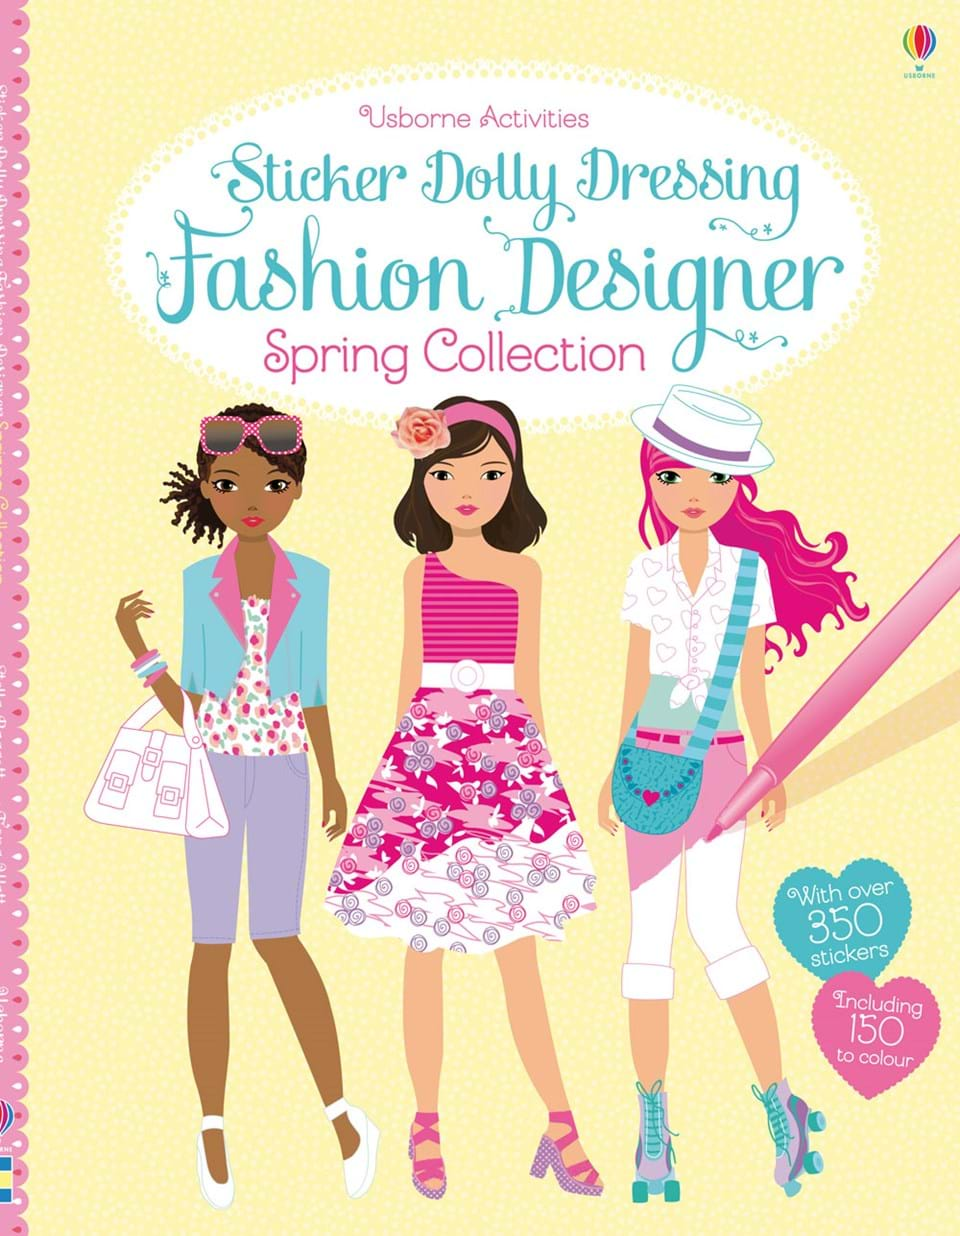 Fashion designer spring collection at usborne books at home for To be a fashion designer